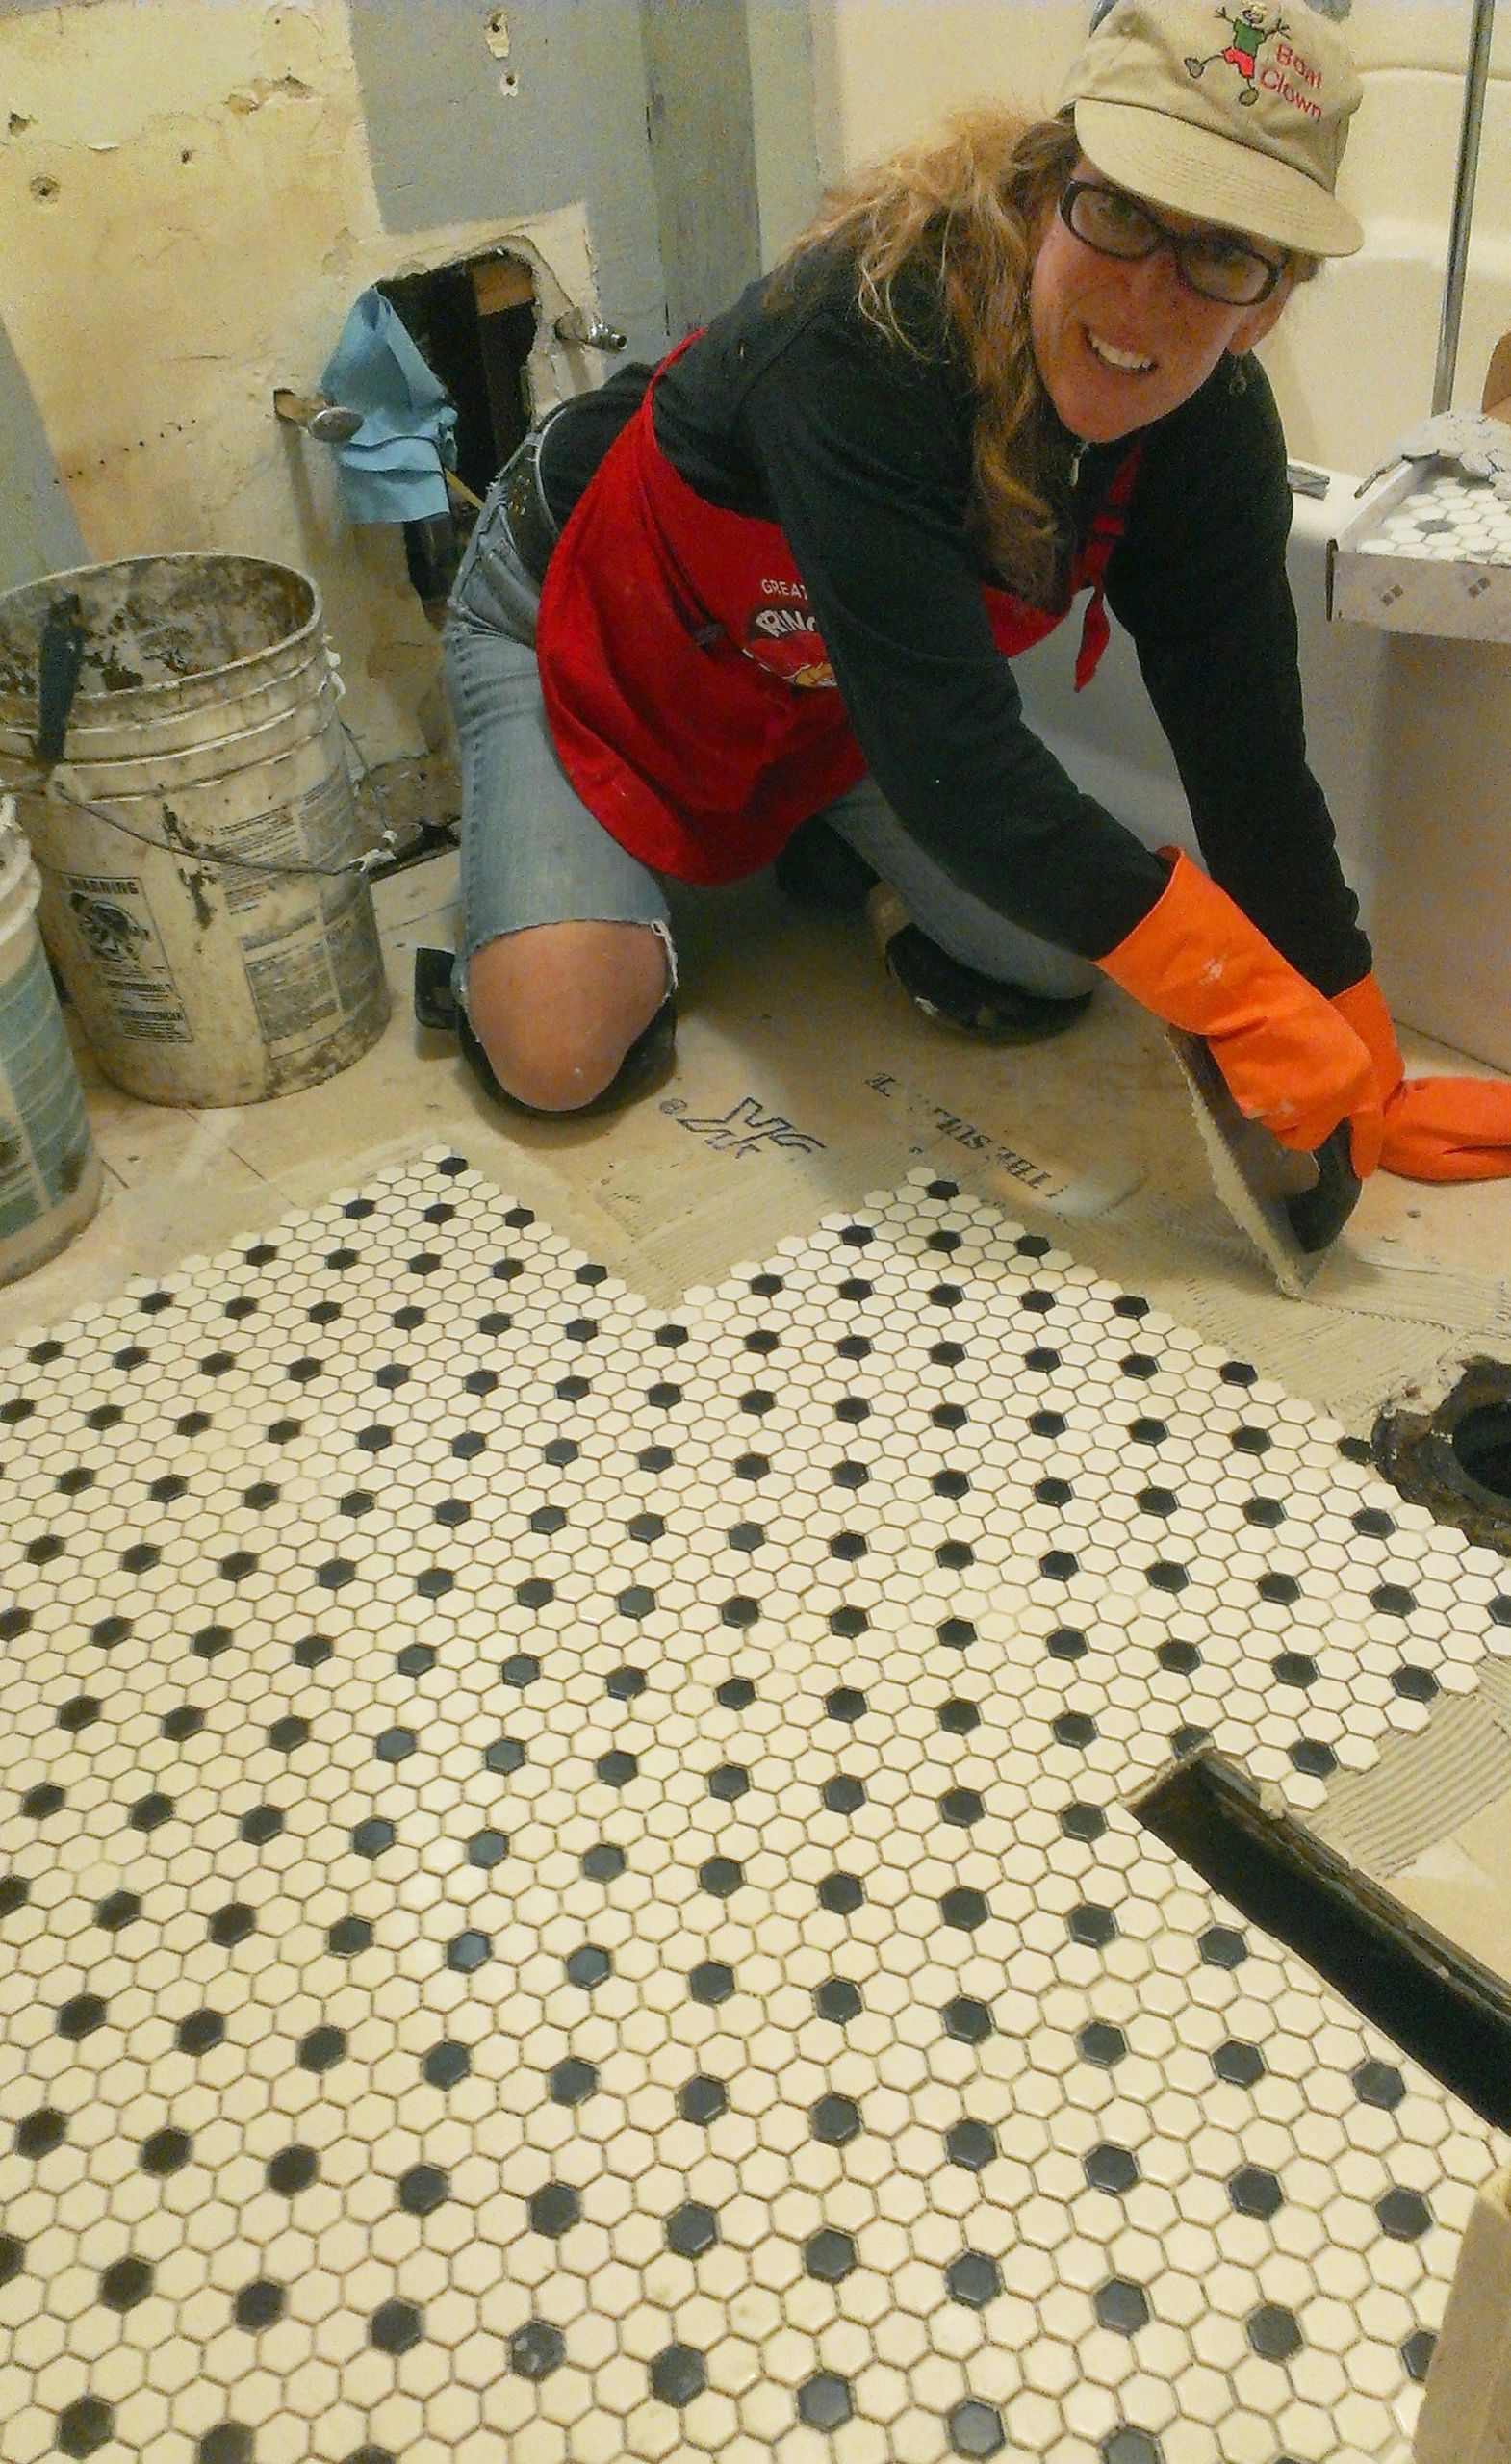 Michele installing 1x1 black and white hex tile mosaics on bathroom floor.